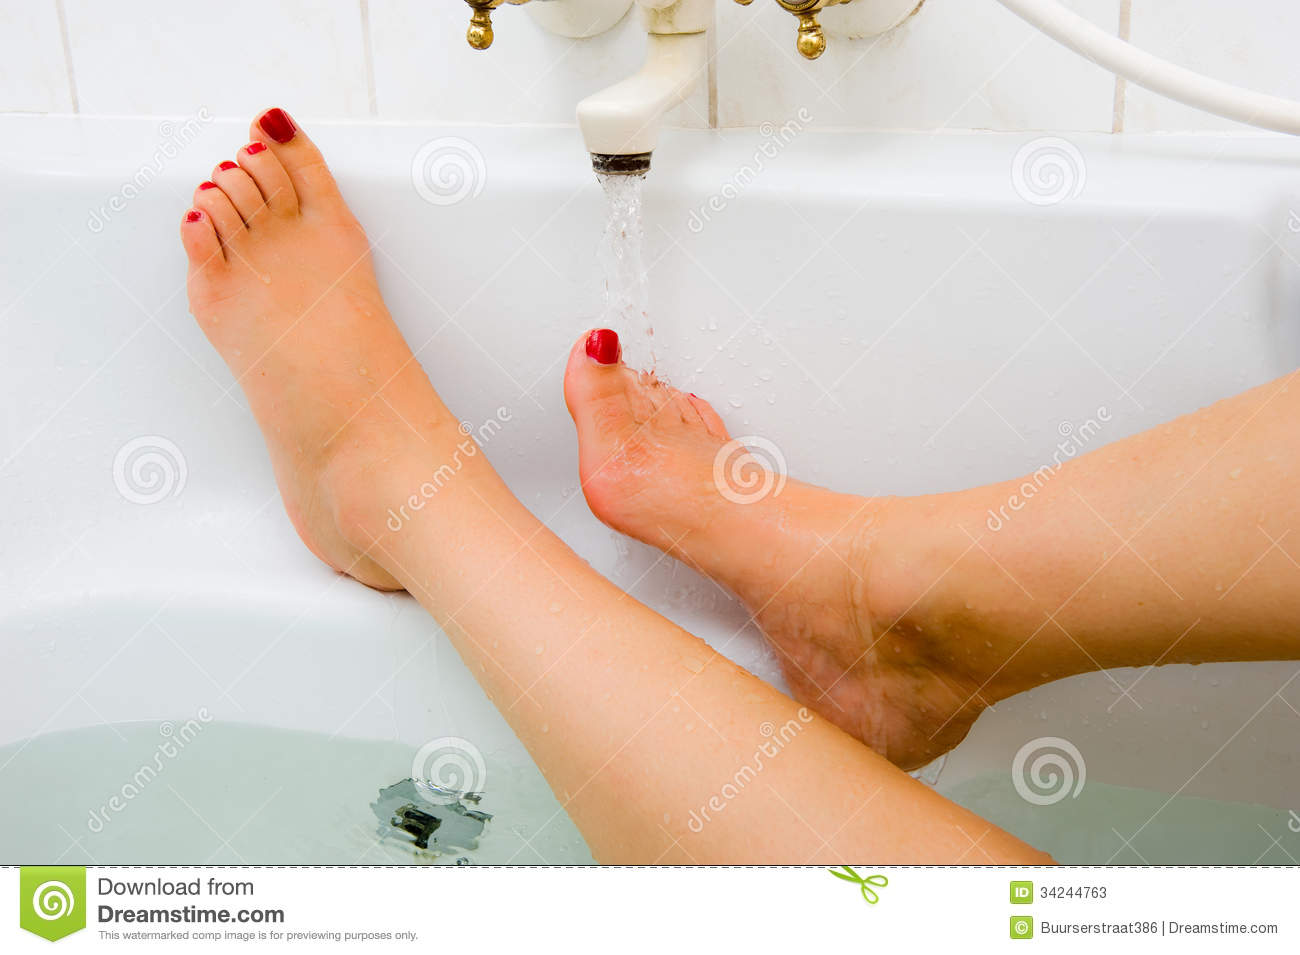 Hot water of bath faucet stock photos image 34244763 - Bathtub that keeps water warm ...